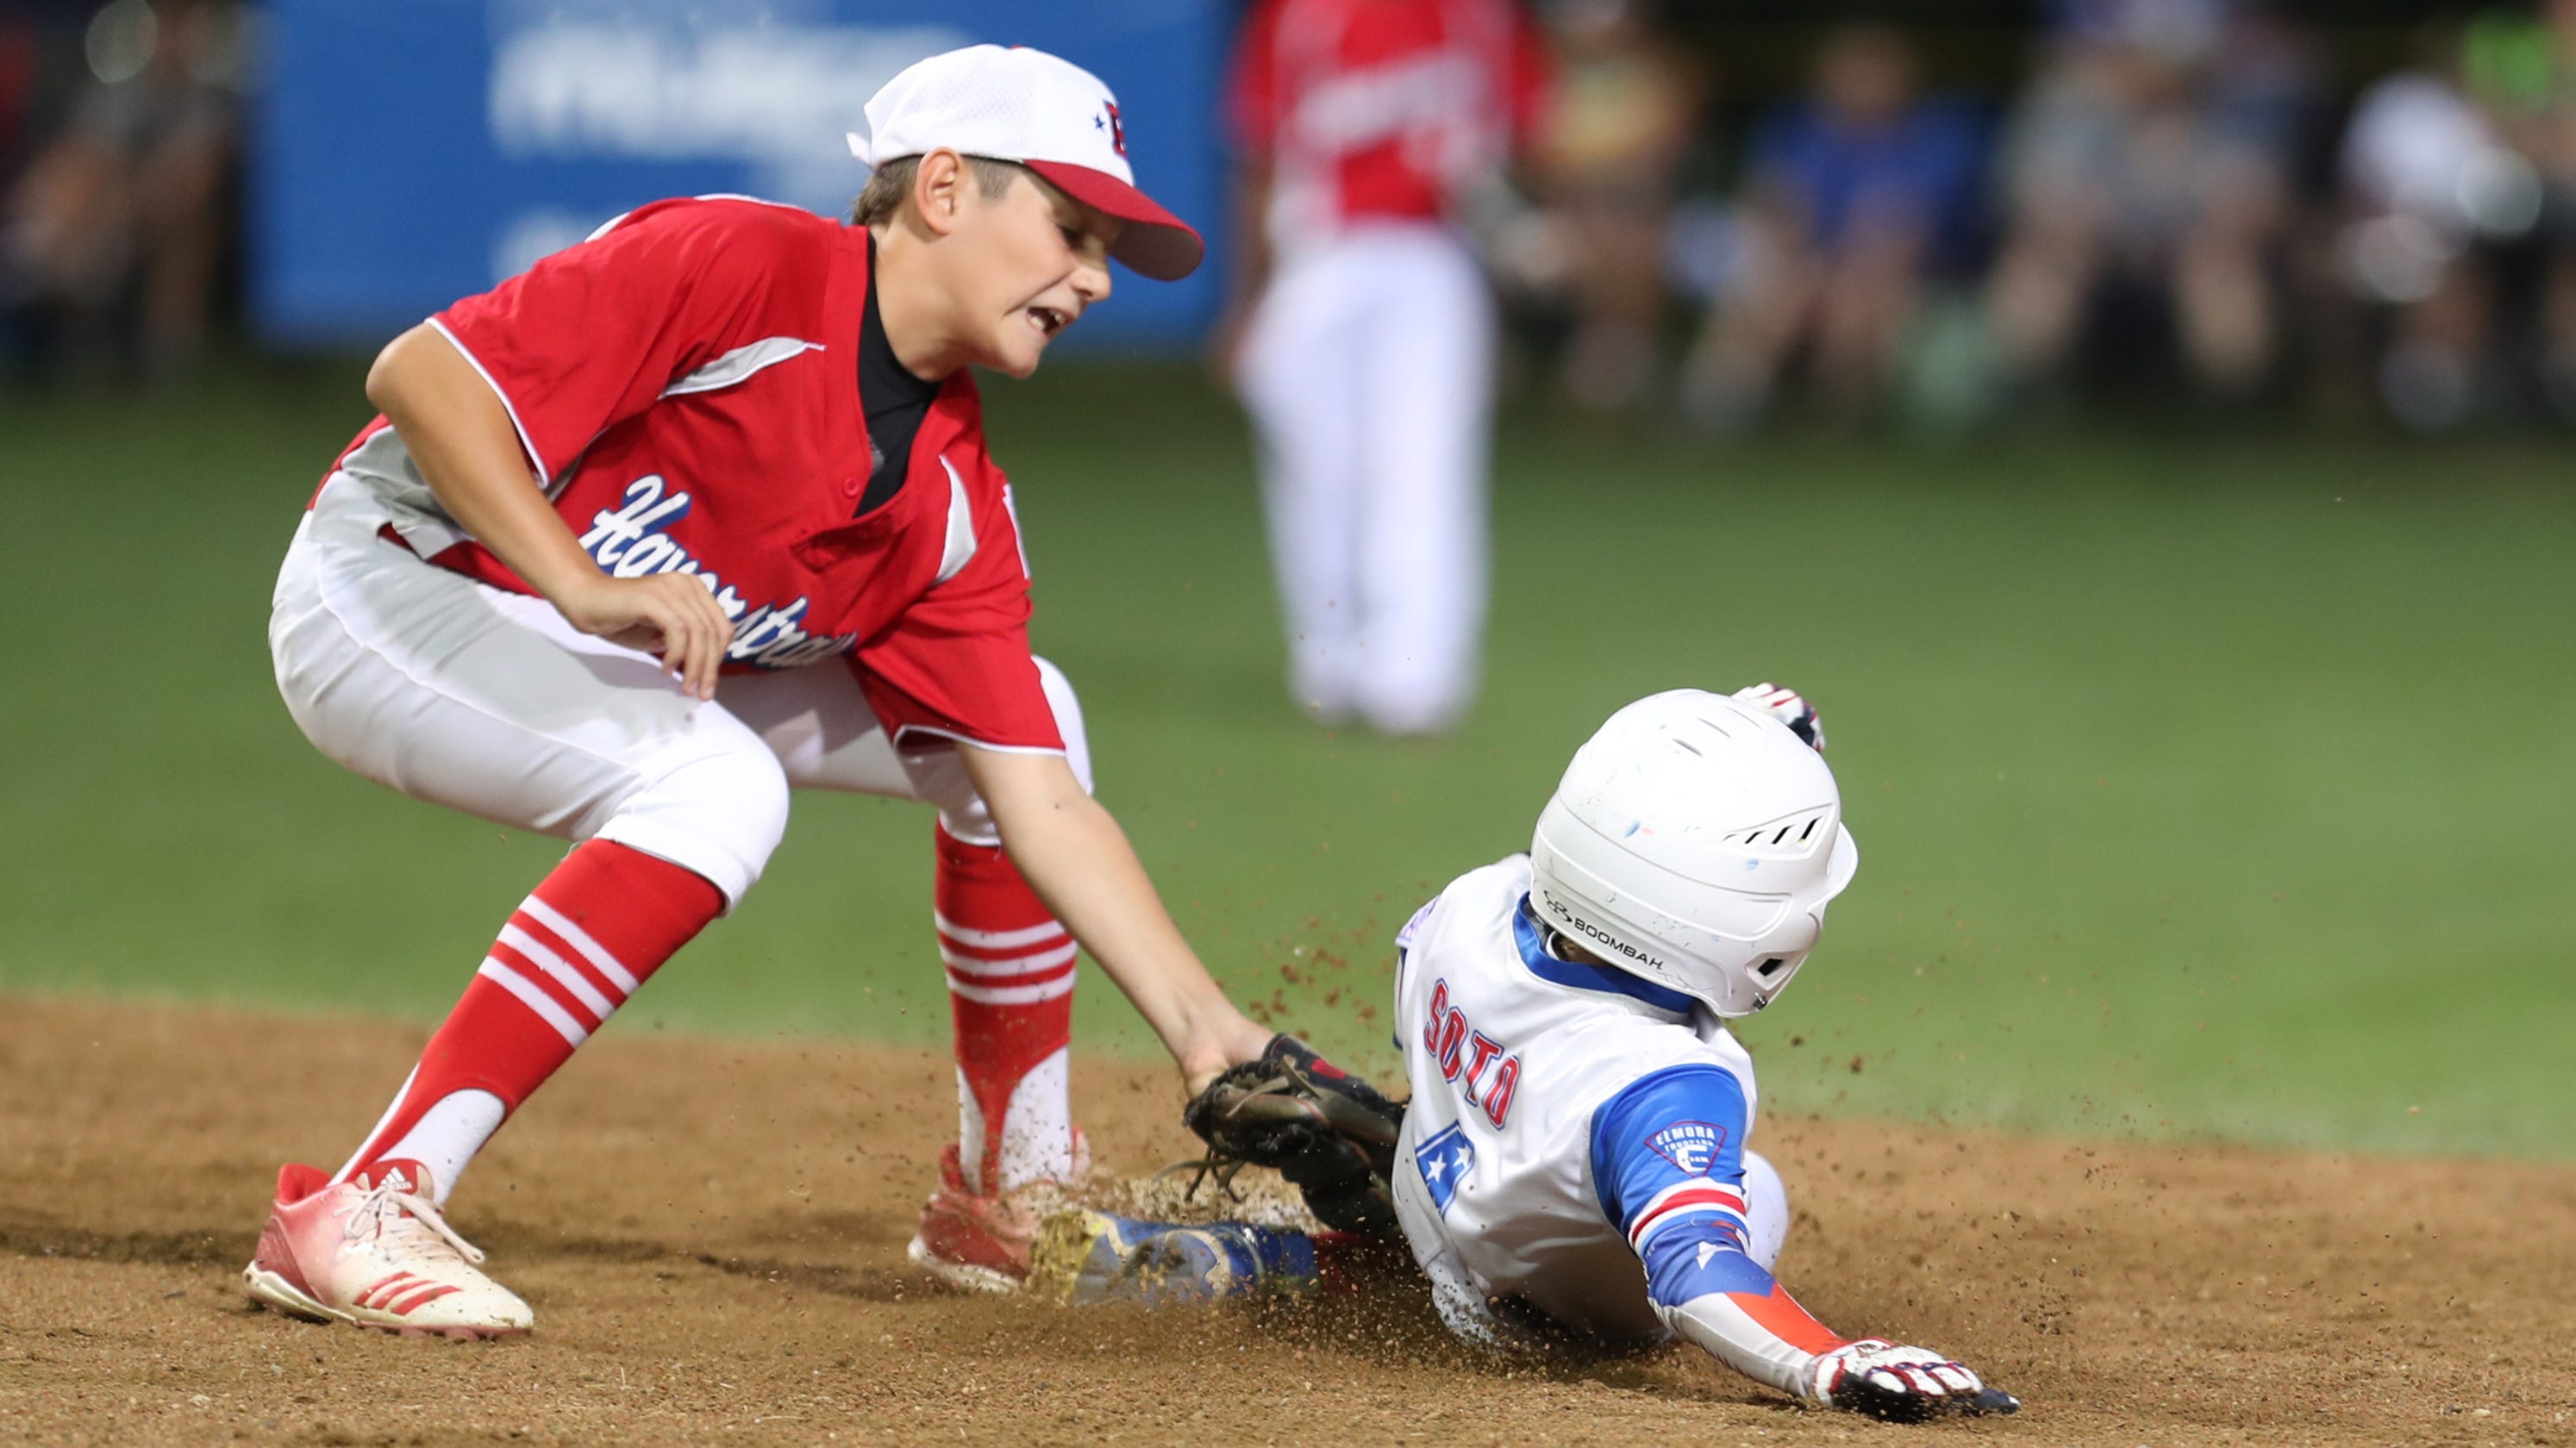 Haverstraw falls one game shy of Little League World Series